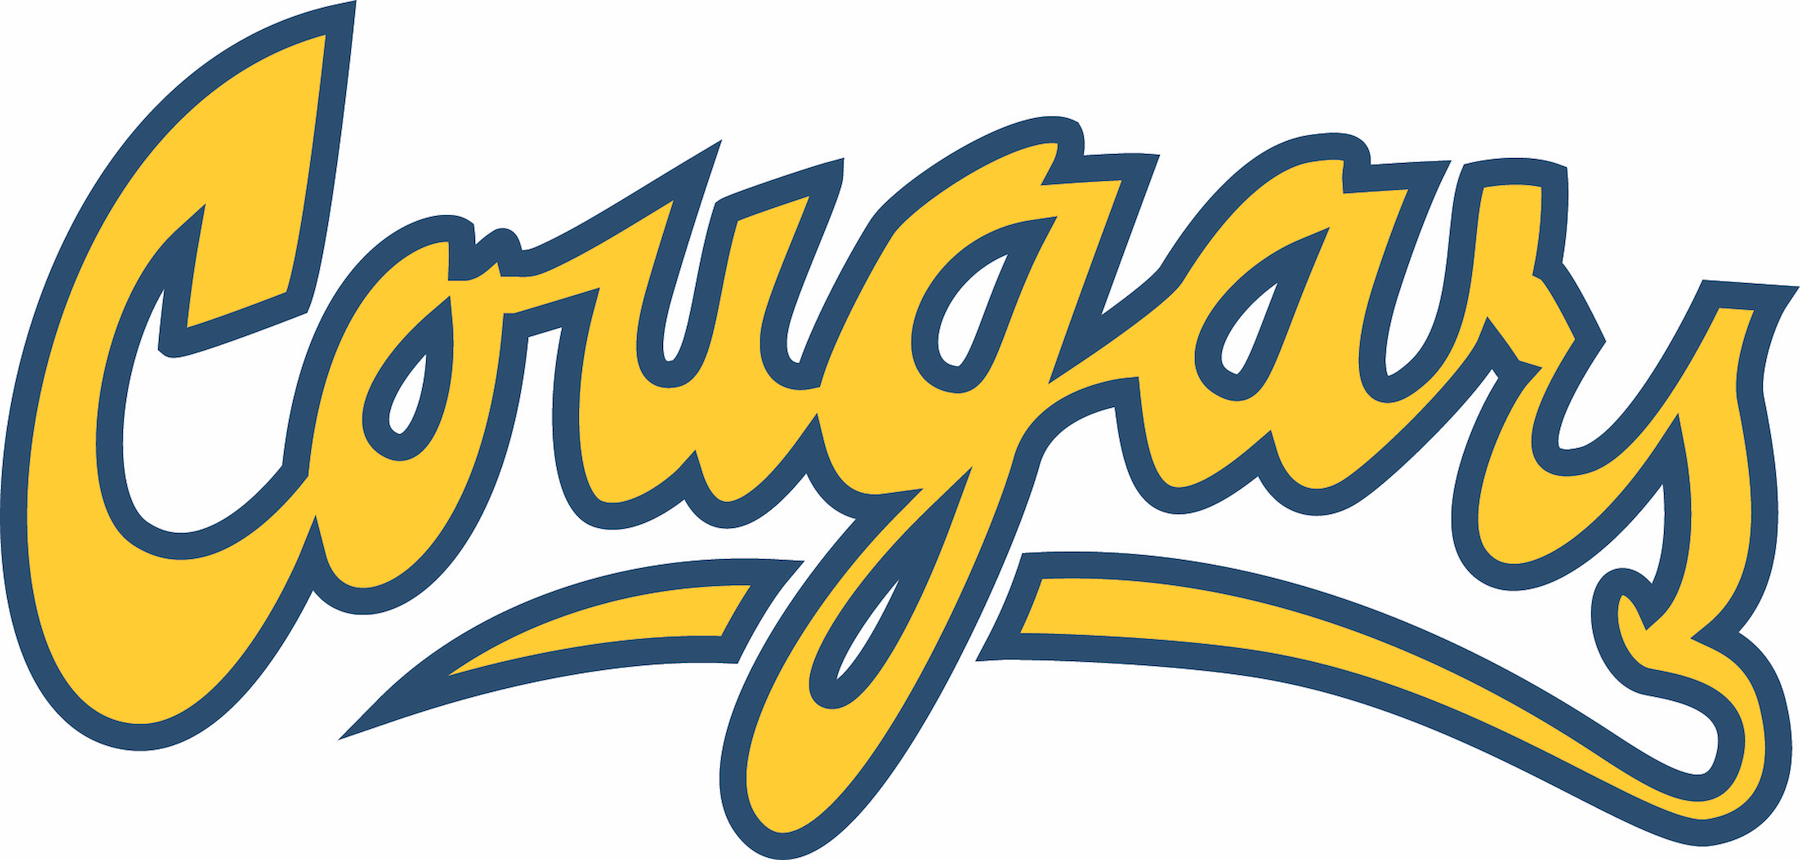 College of the Canyons Cougars script logo.